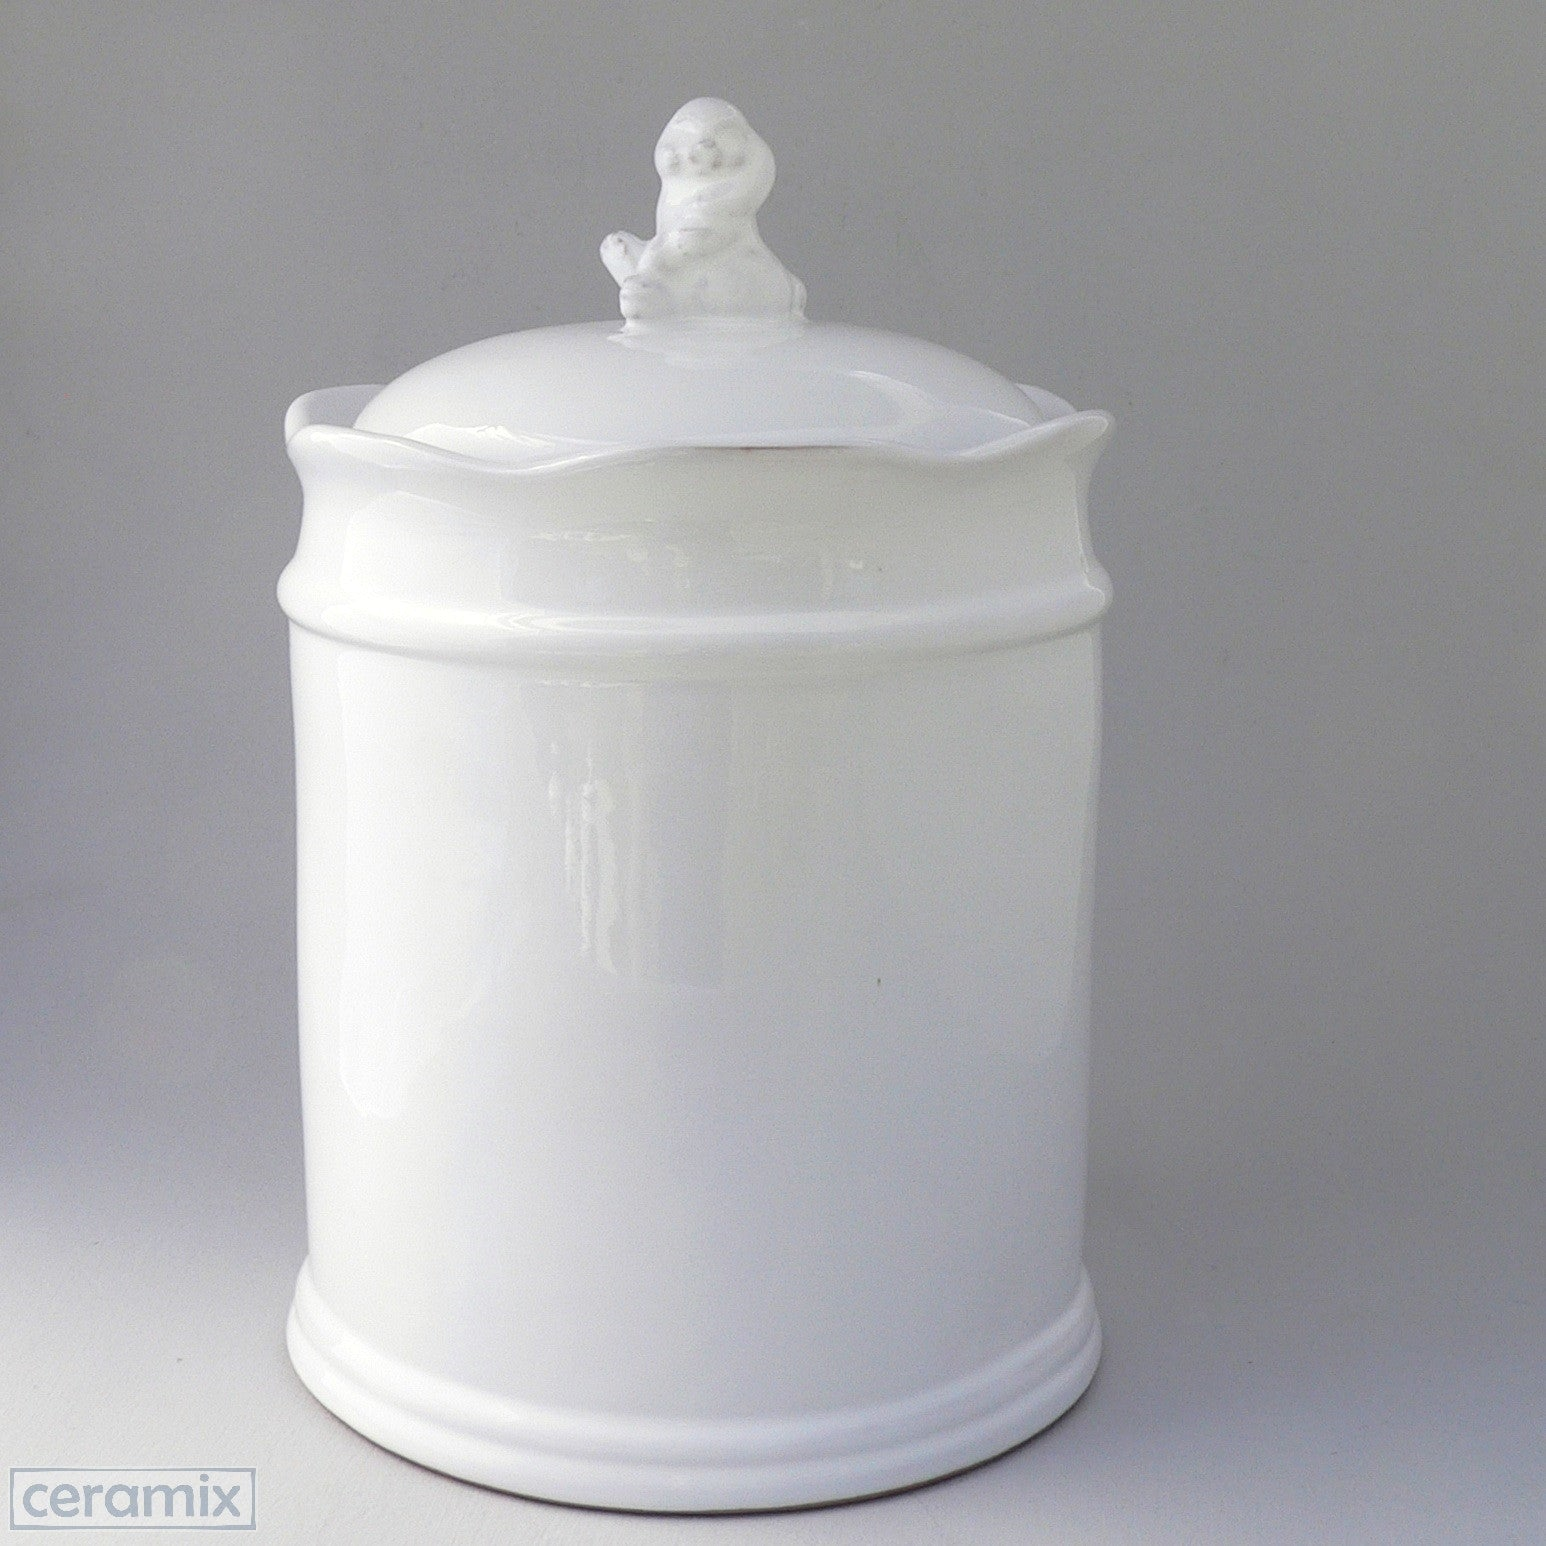 White Ceramic Large Bunny Canister in Terracotta Clay Glazed White by Ceramix